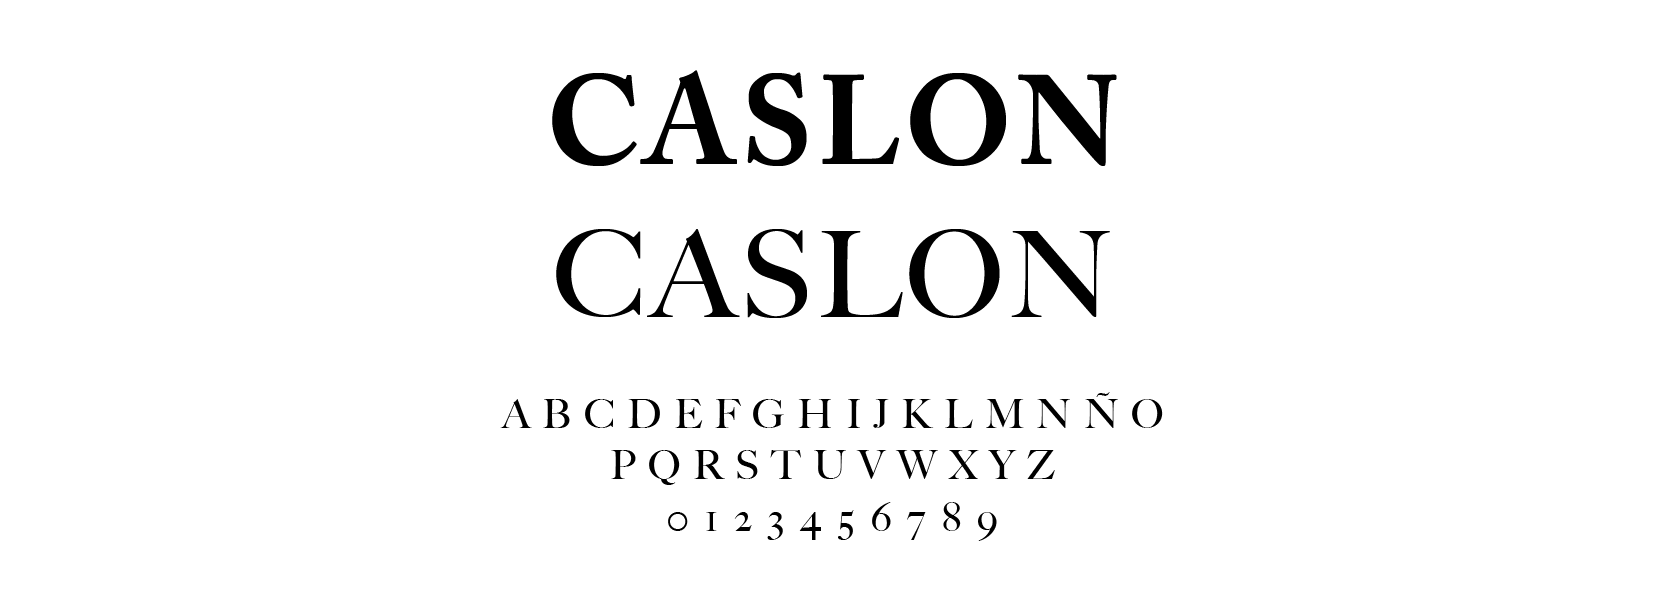 Tipografía William Carslon 1734